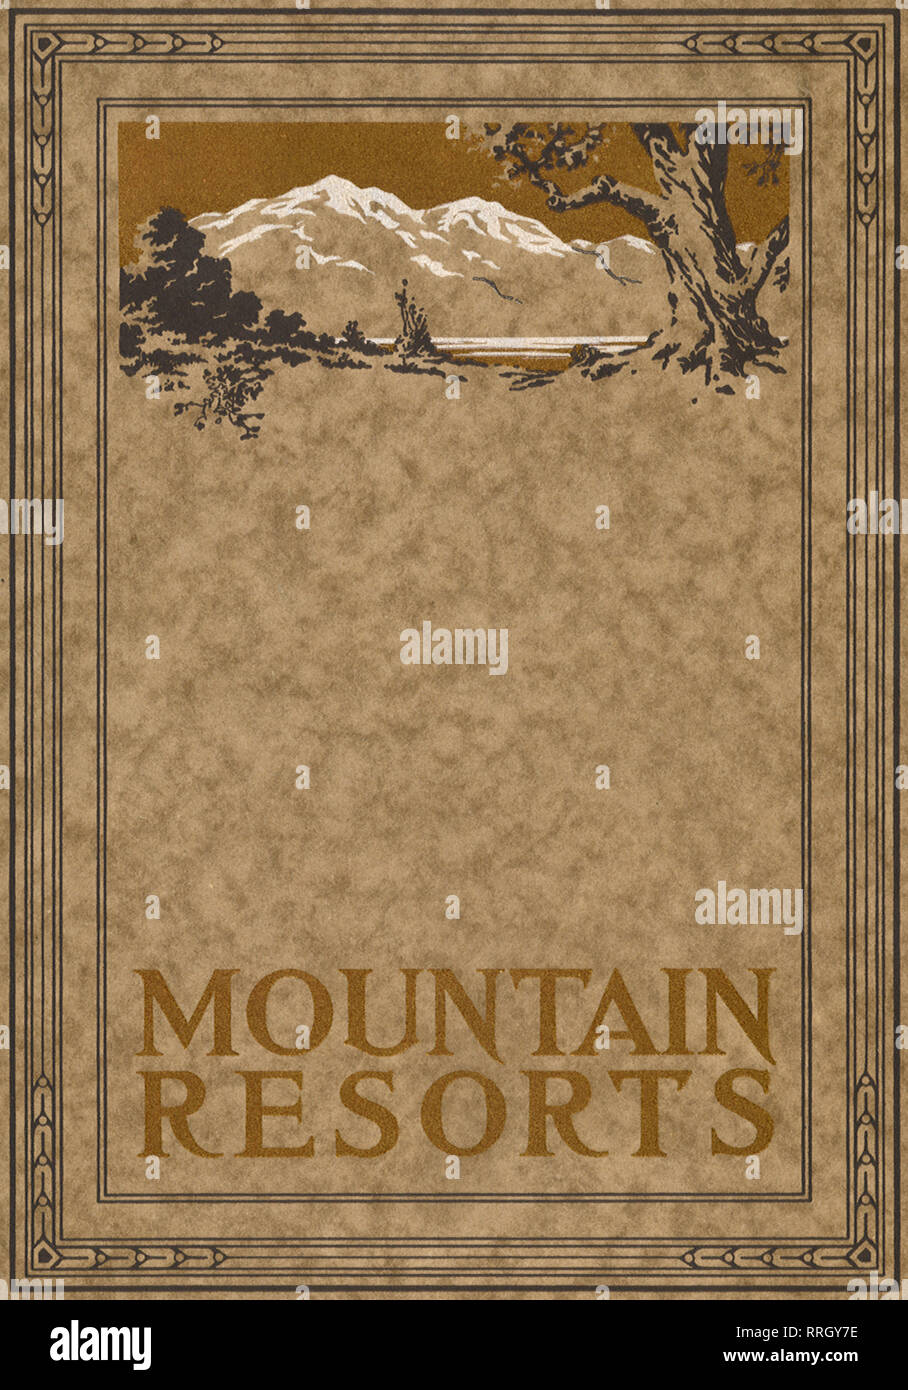 Ad for Mountain Resort. - Stock Image